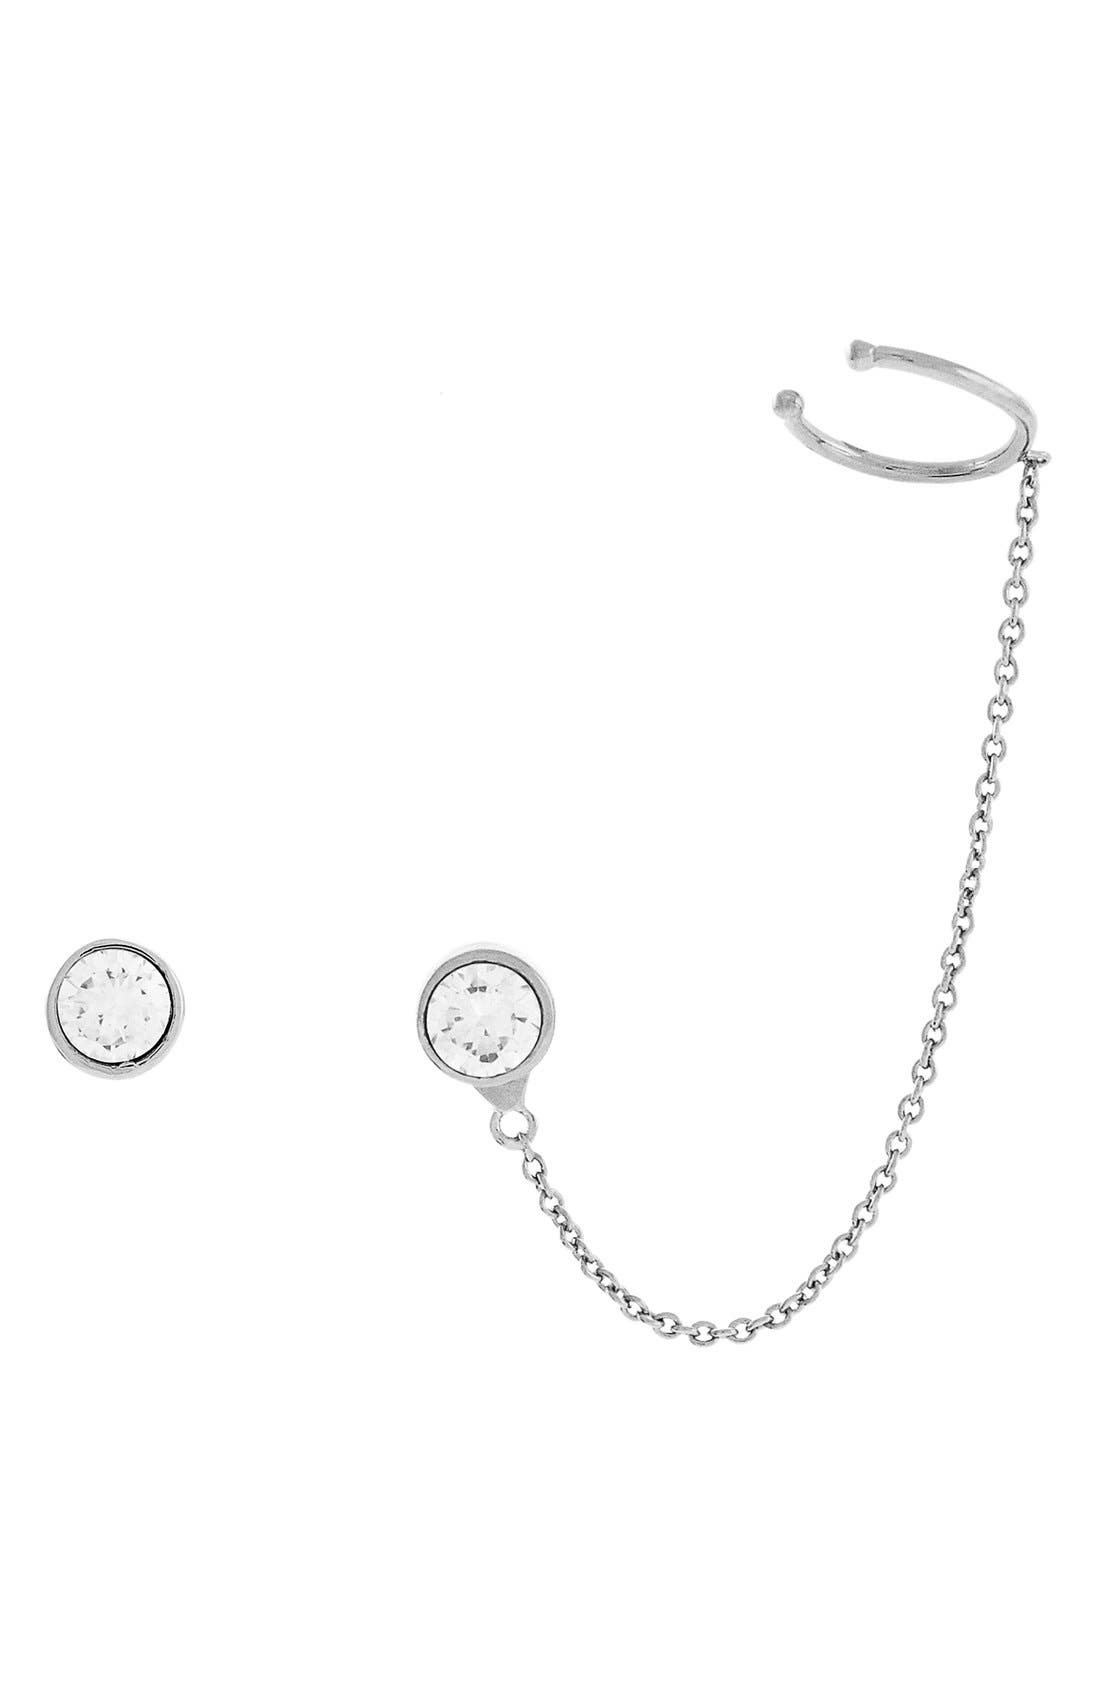 Alternate Image 1 Selected - Vince Camuto Stud & Ear Chain Mismatched Earrings